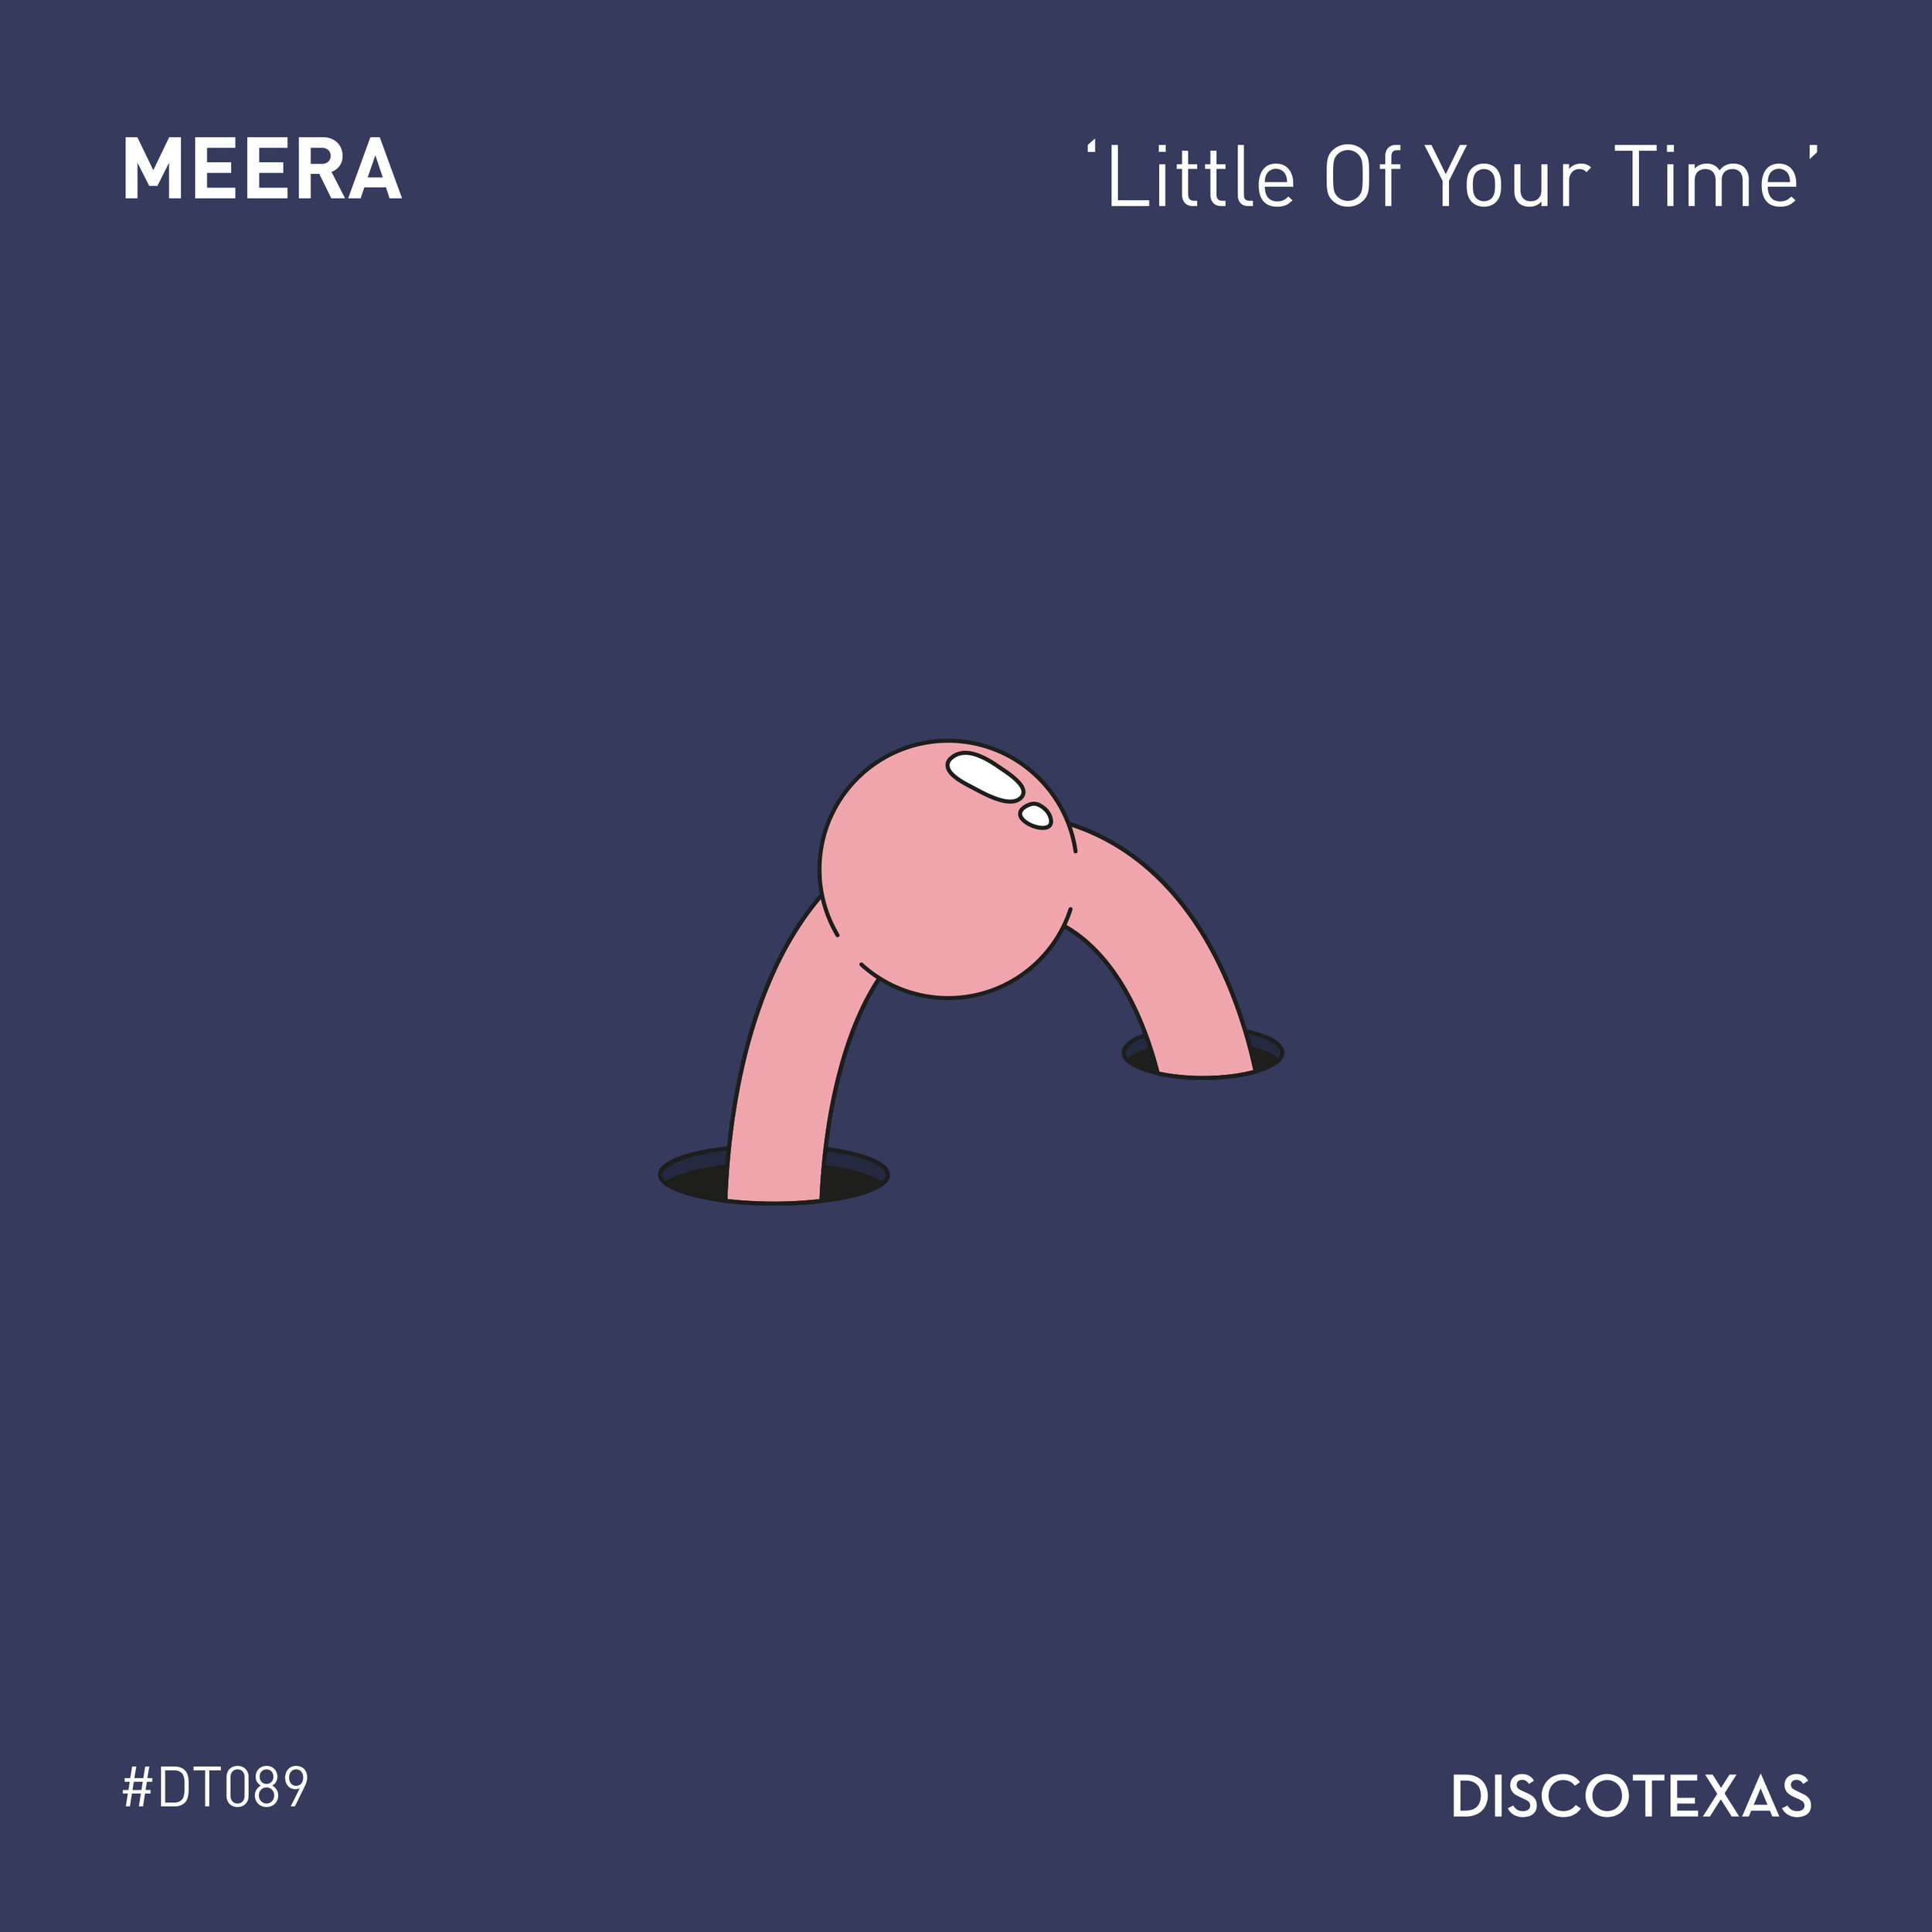 DT089: MEERA - Little Of Your Time